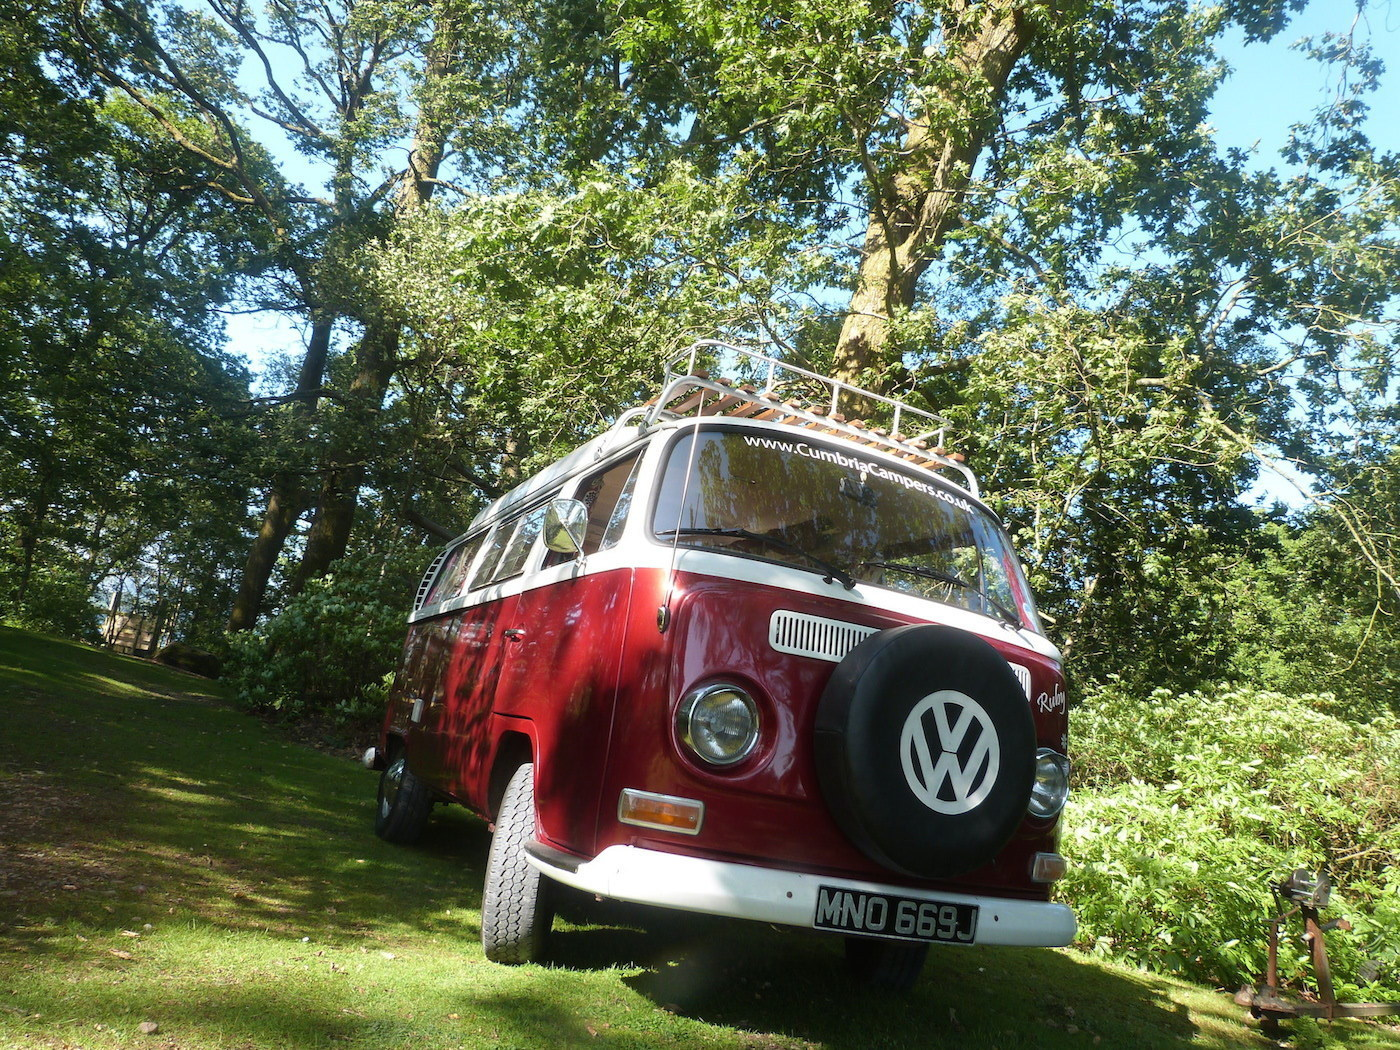 vw camper hire from Pomona, explore the lakes